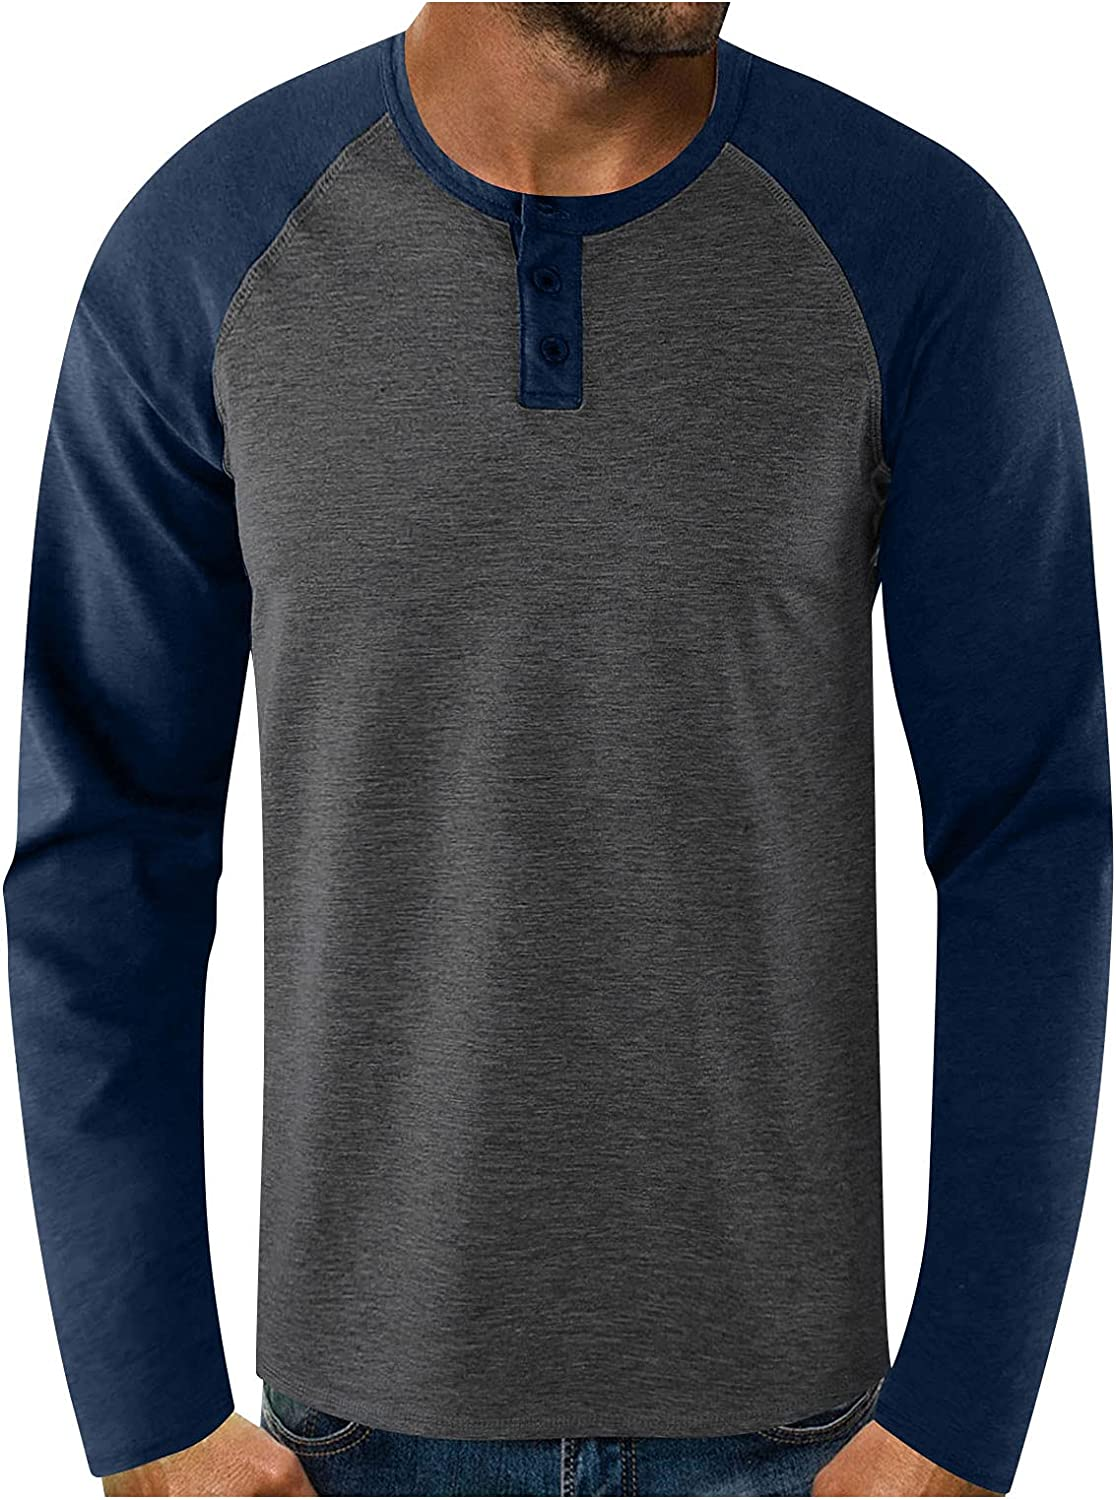 DZQUY Mens Slim Fit Gym Workout T-Shirts Long Sleeve Performance Athletic Shirts Running Fitness Tee